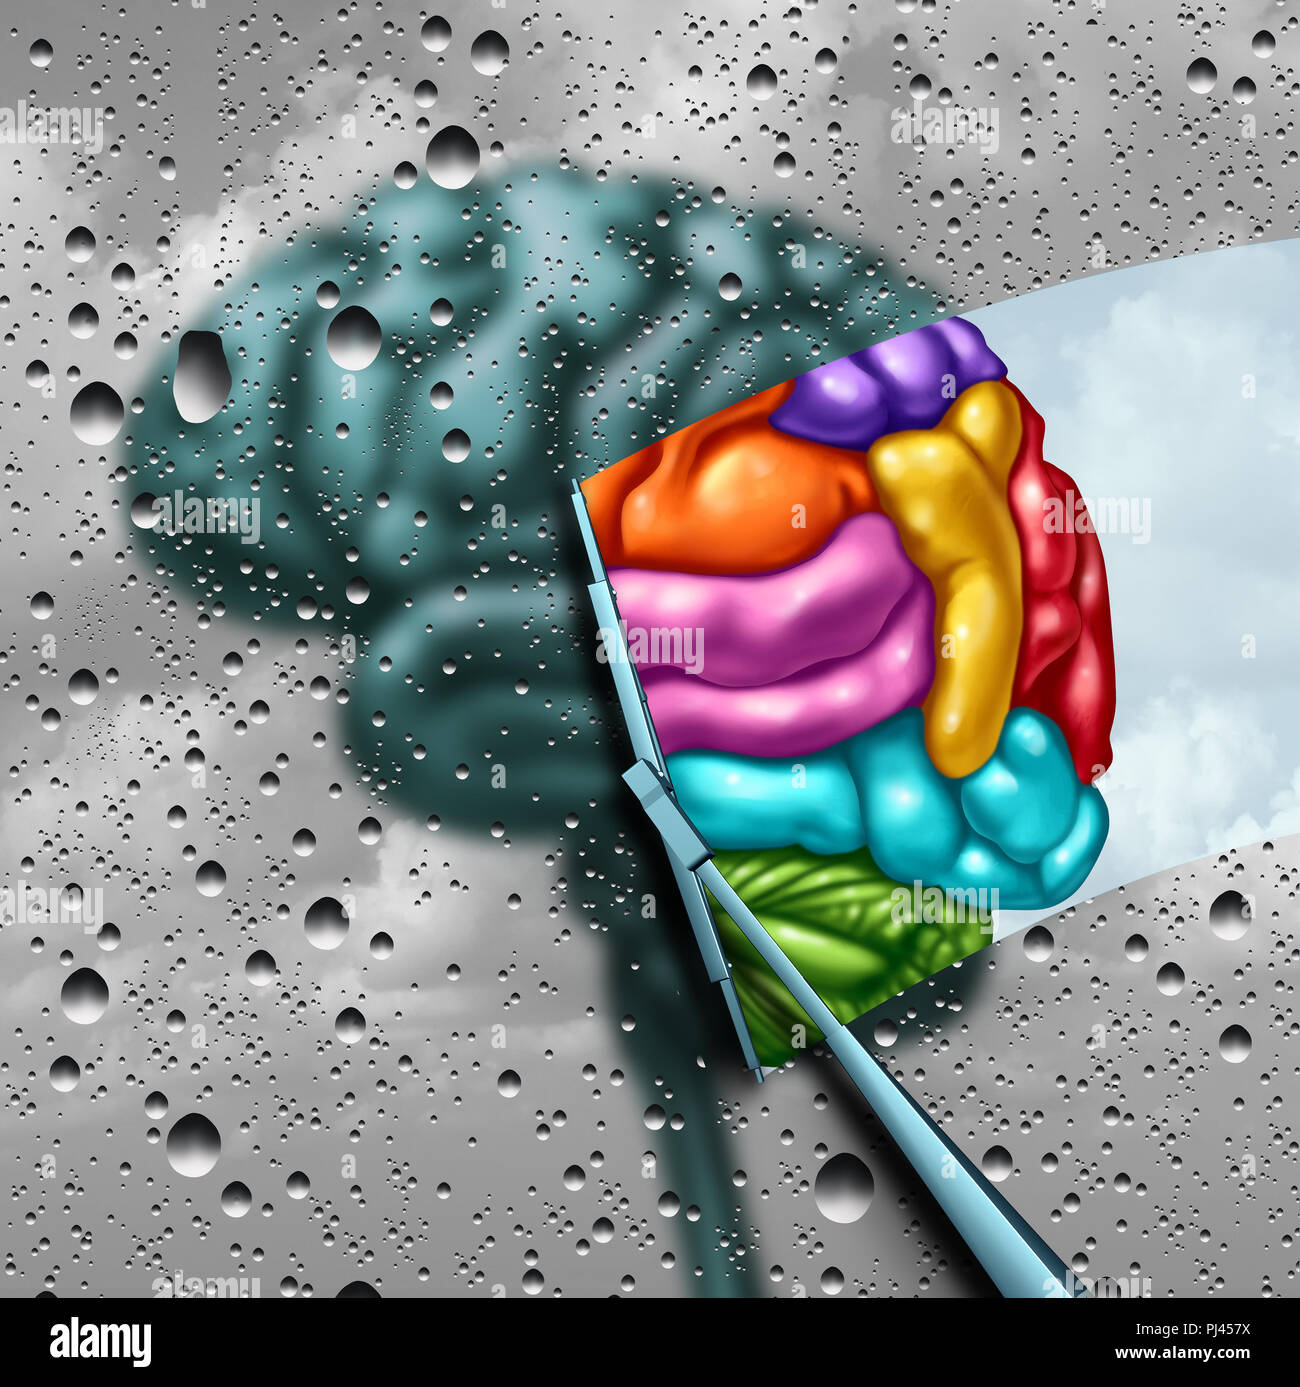 Brain creativity as a gray blurry brain with drops on a window as a wiper cleans the confusion to a creative thinking as a symbol of autism and autist - Stock Image